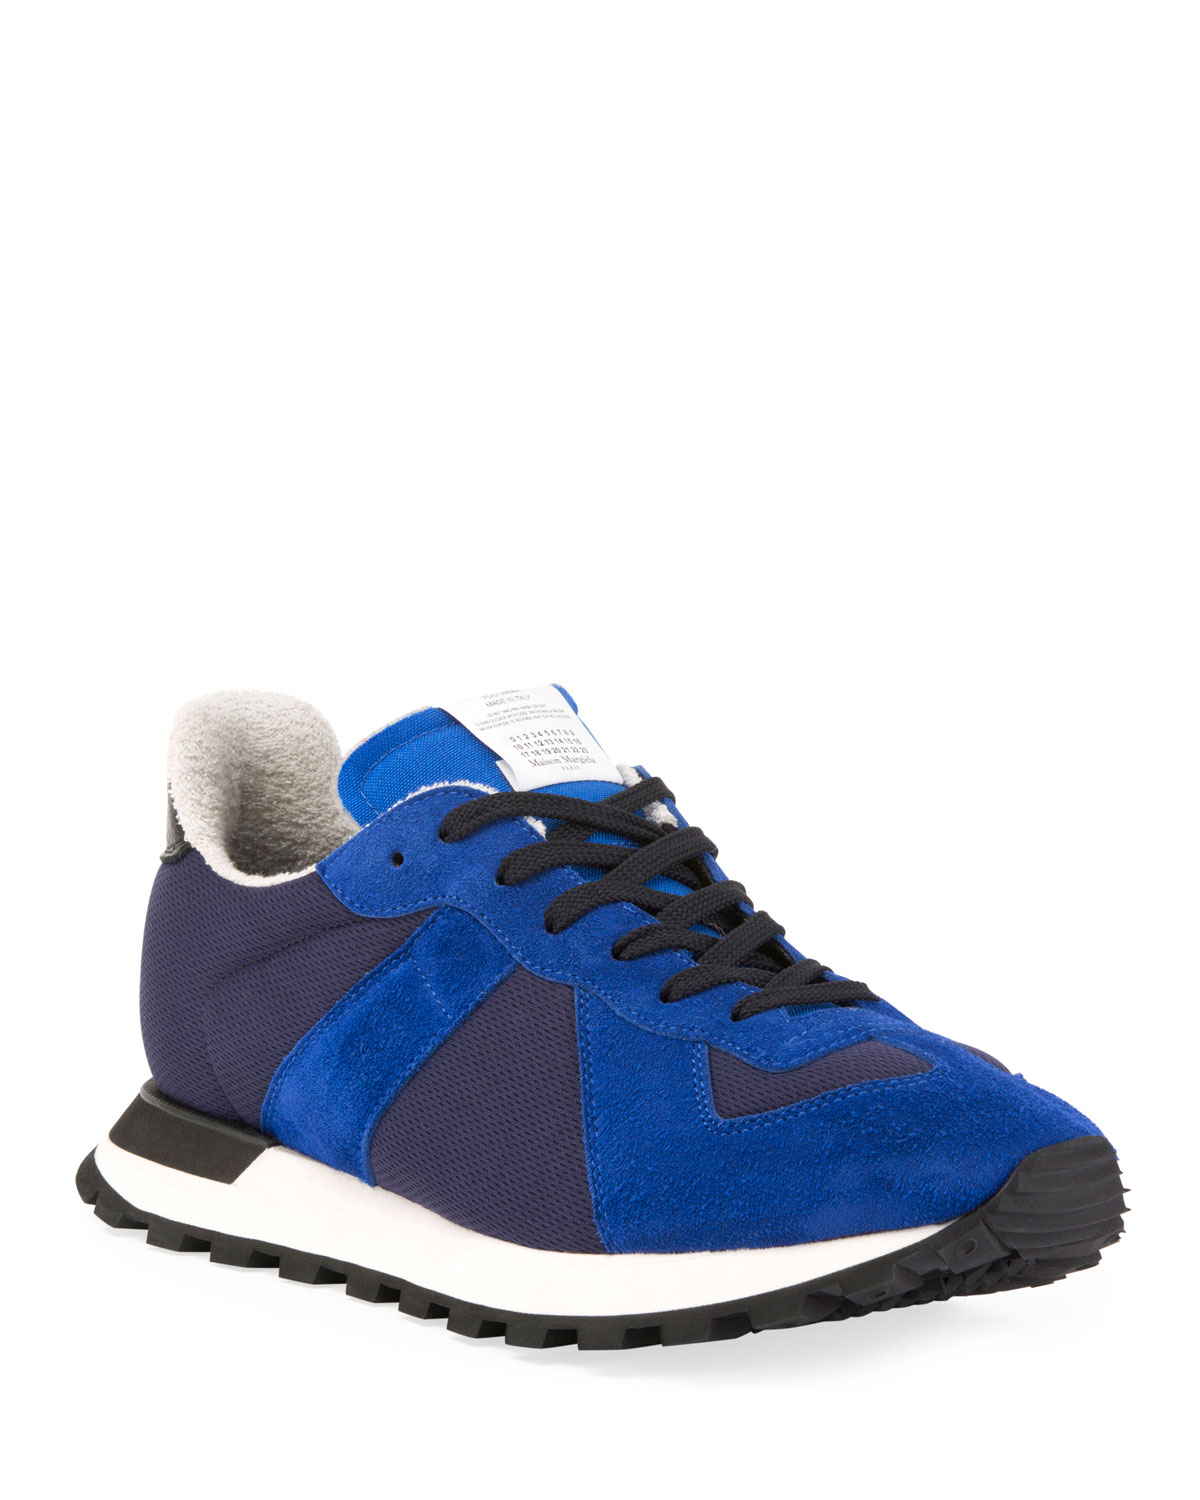 Men's Replica Nylon & Suede Runner Sneakers, Blue